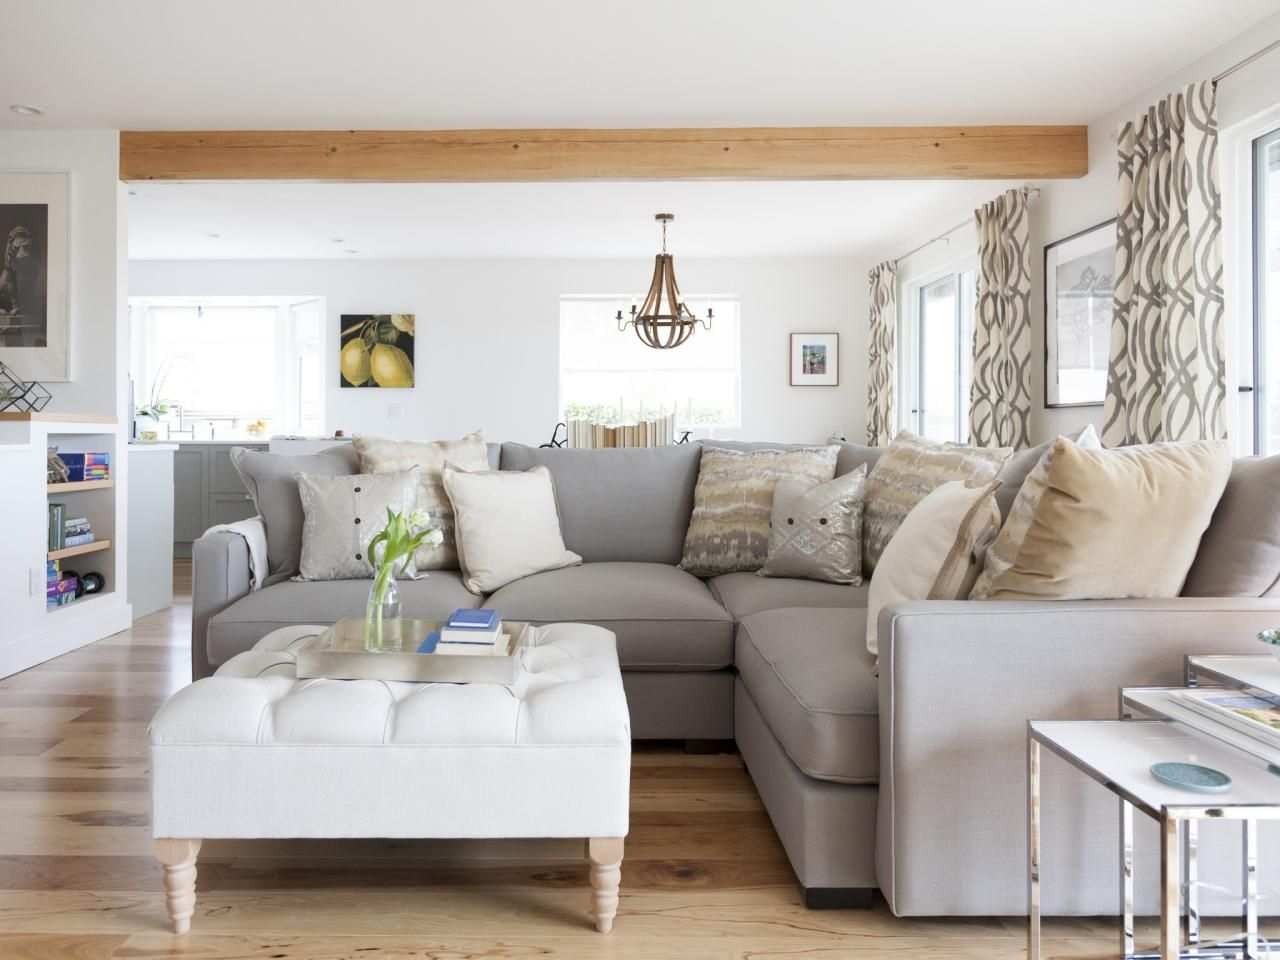 As seen on HGTV's hit show Love It or List It Too, the living room in this space has plenty of seating. With a sectional sofa and ottoman, this small area can easily seat up to ten people.